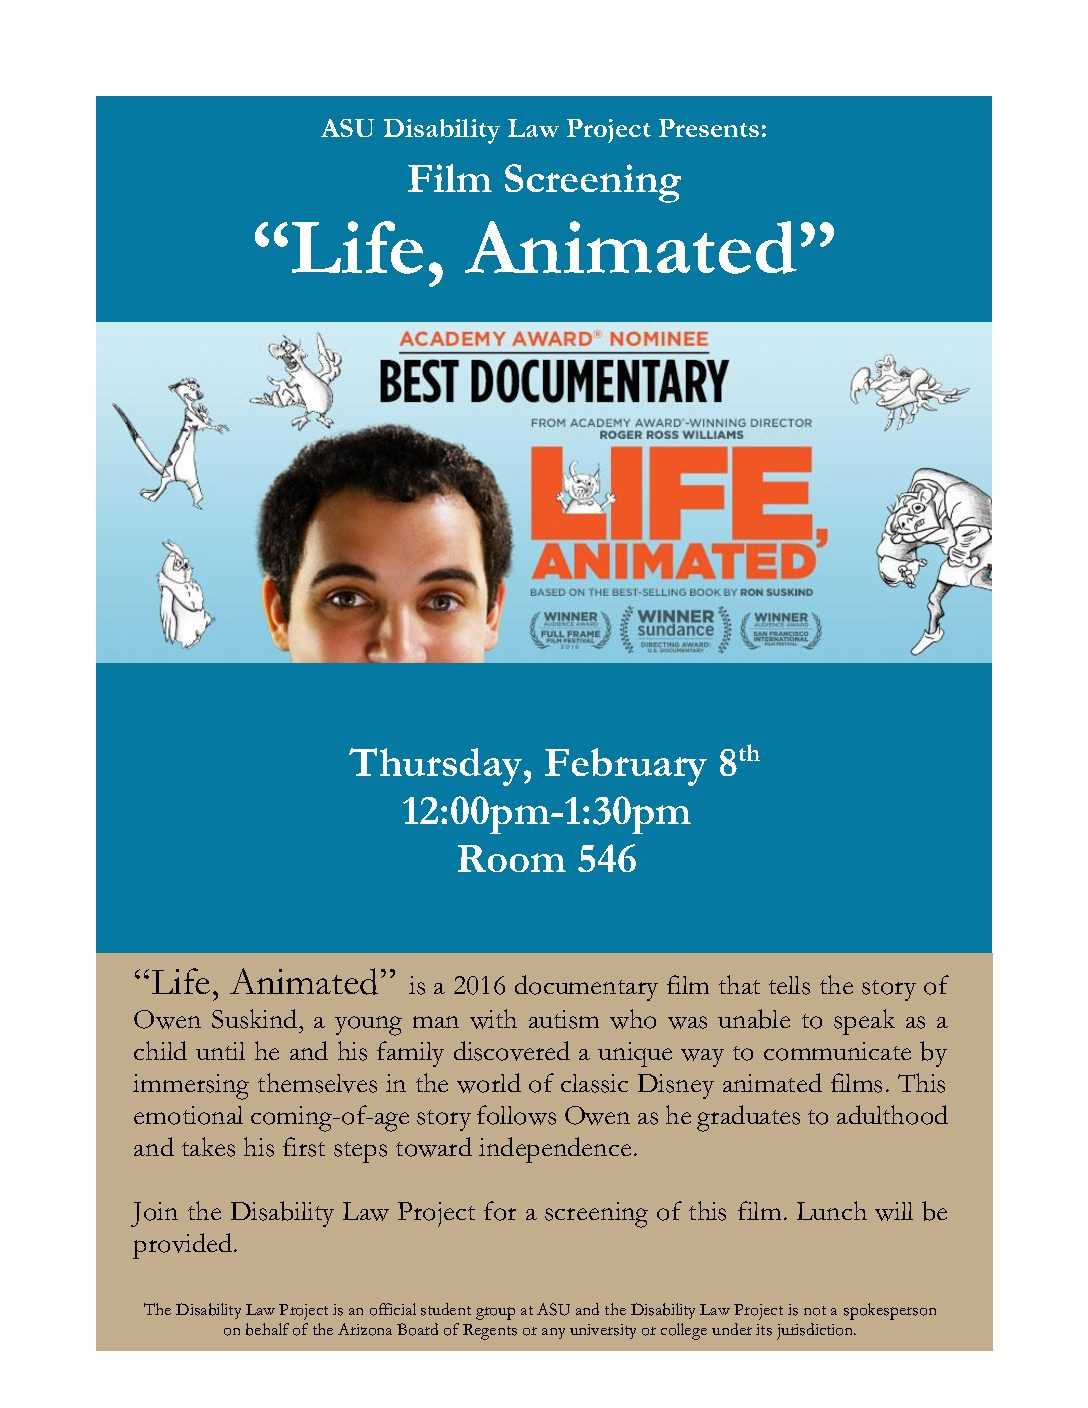 TODAY! Thursday, 2/8 — Film Screening and Pizza at Lunch, Room 546